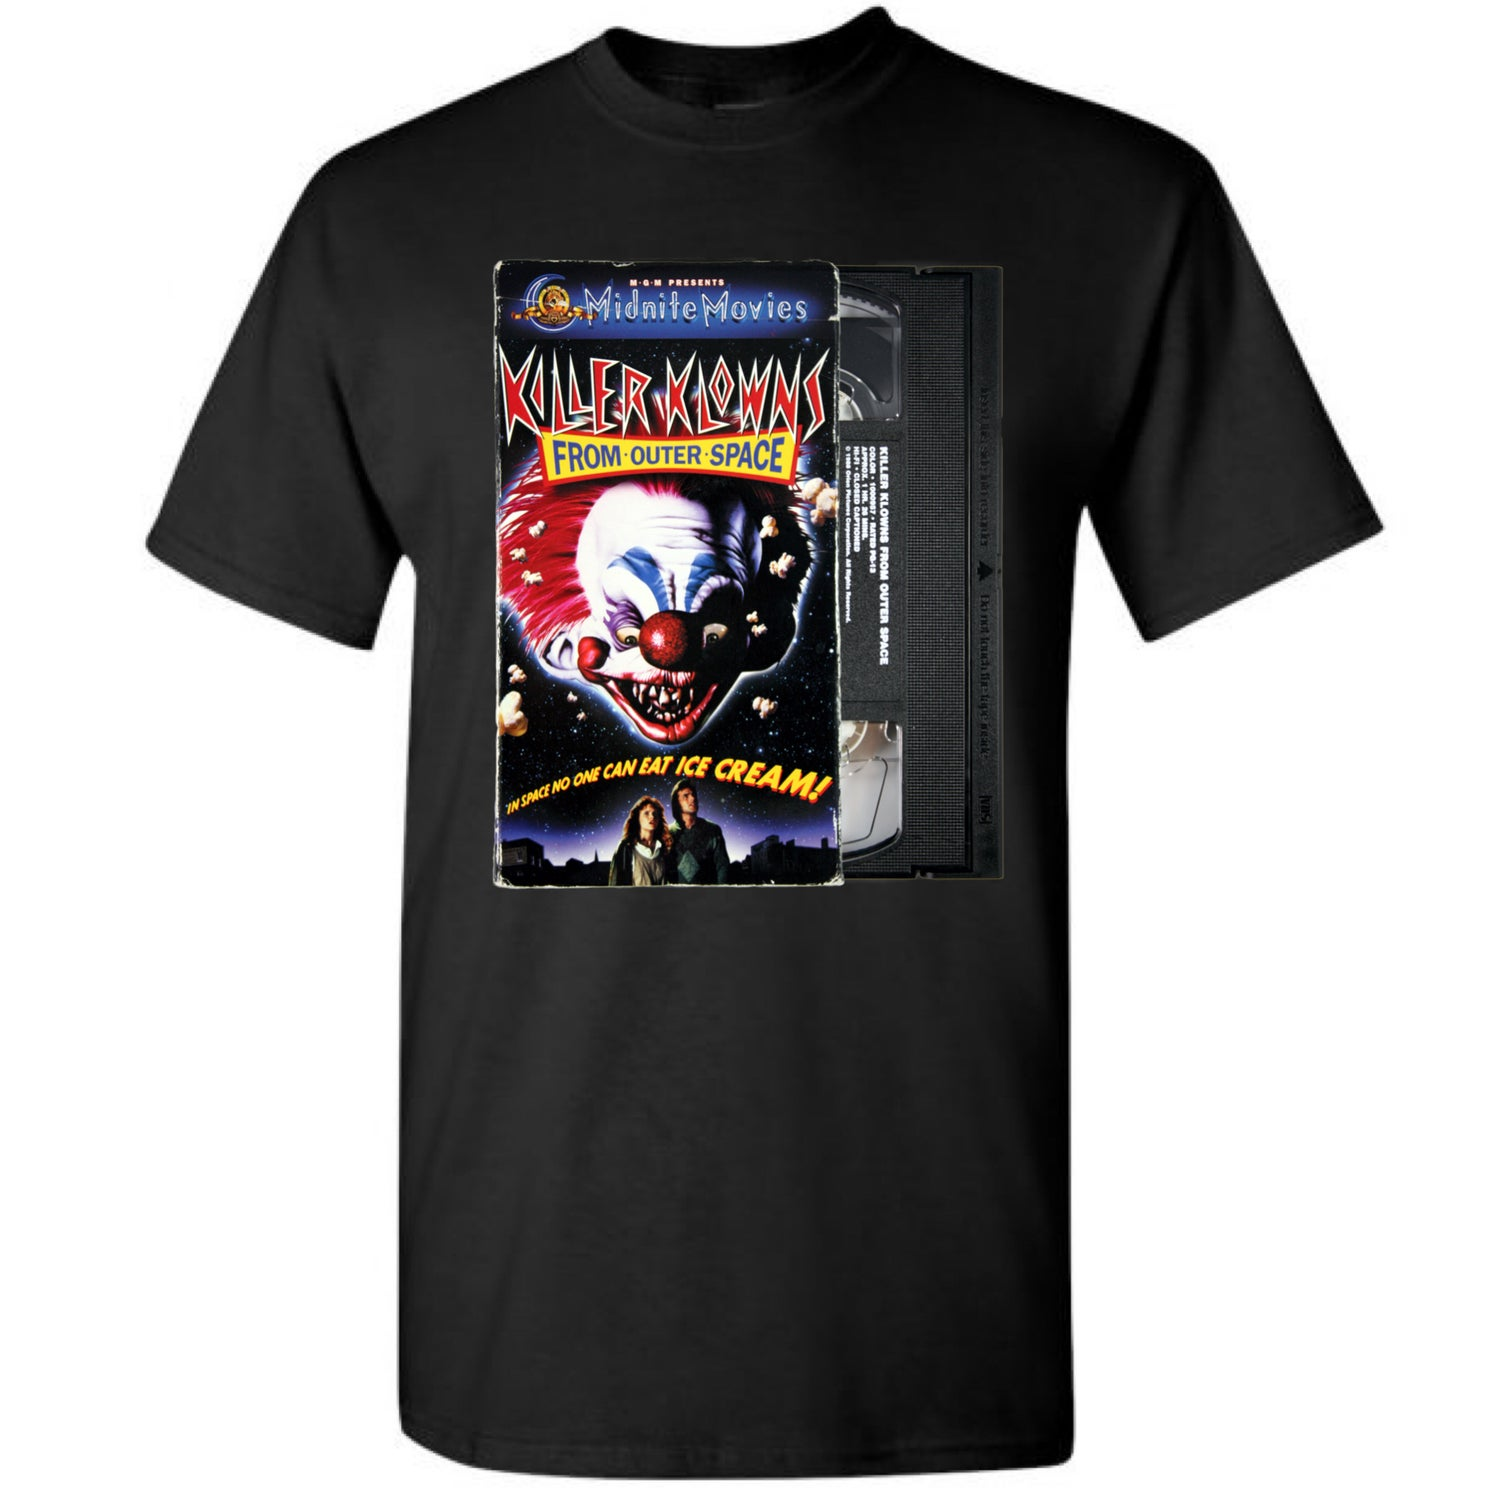 Image of VHS Series Killer Klowns From Outer Space Tee